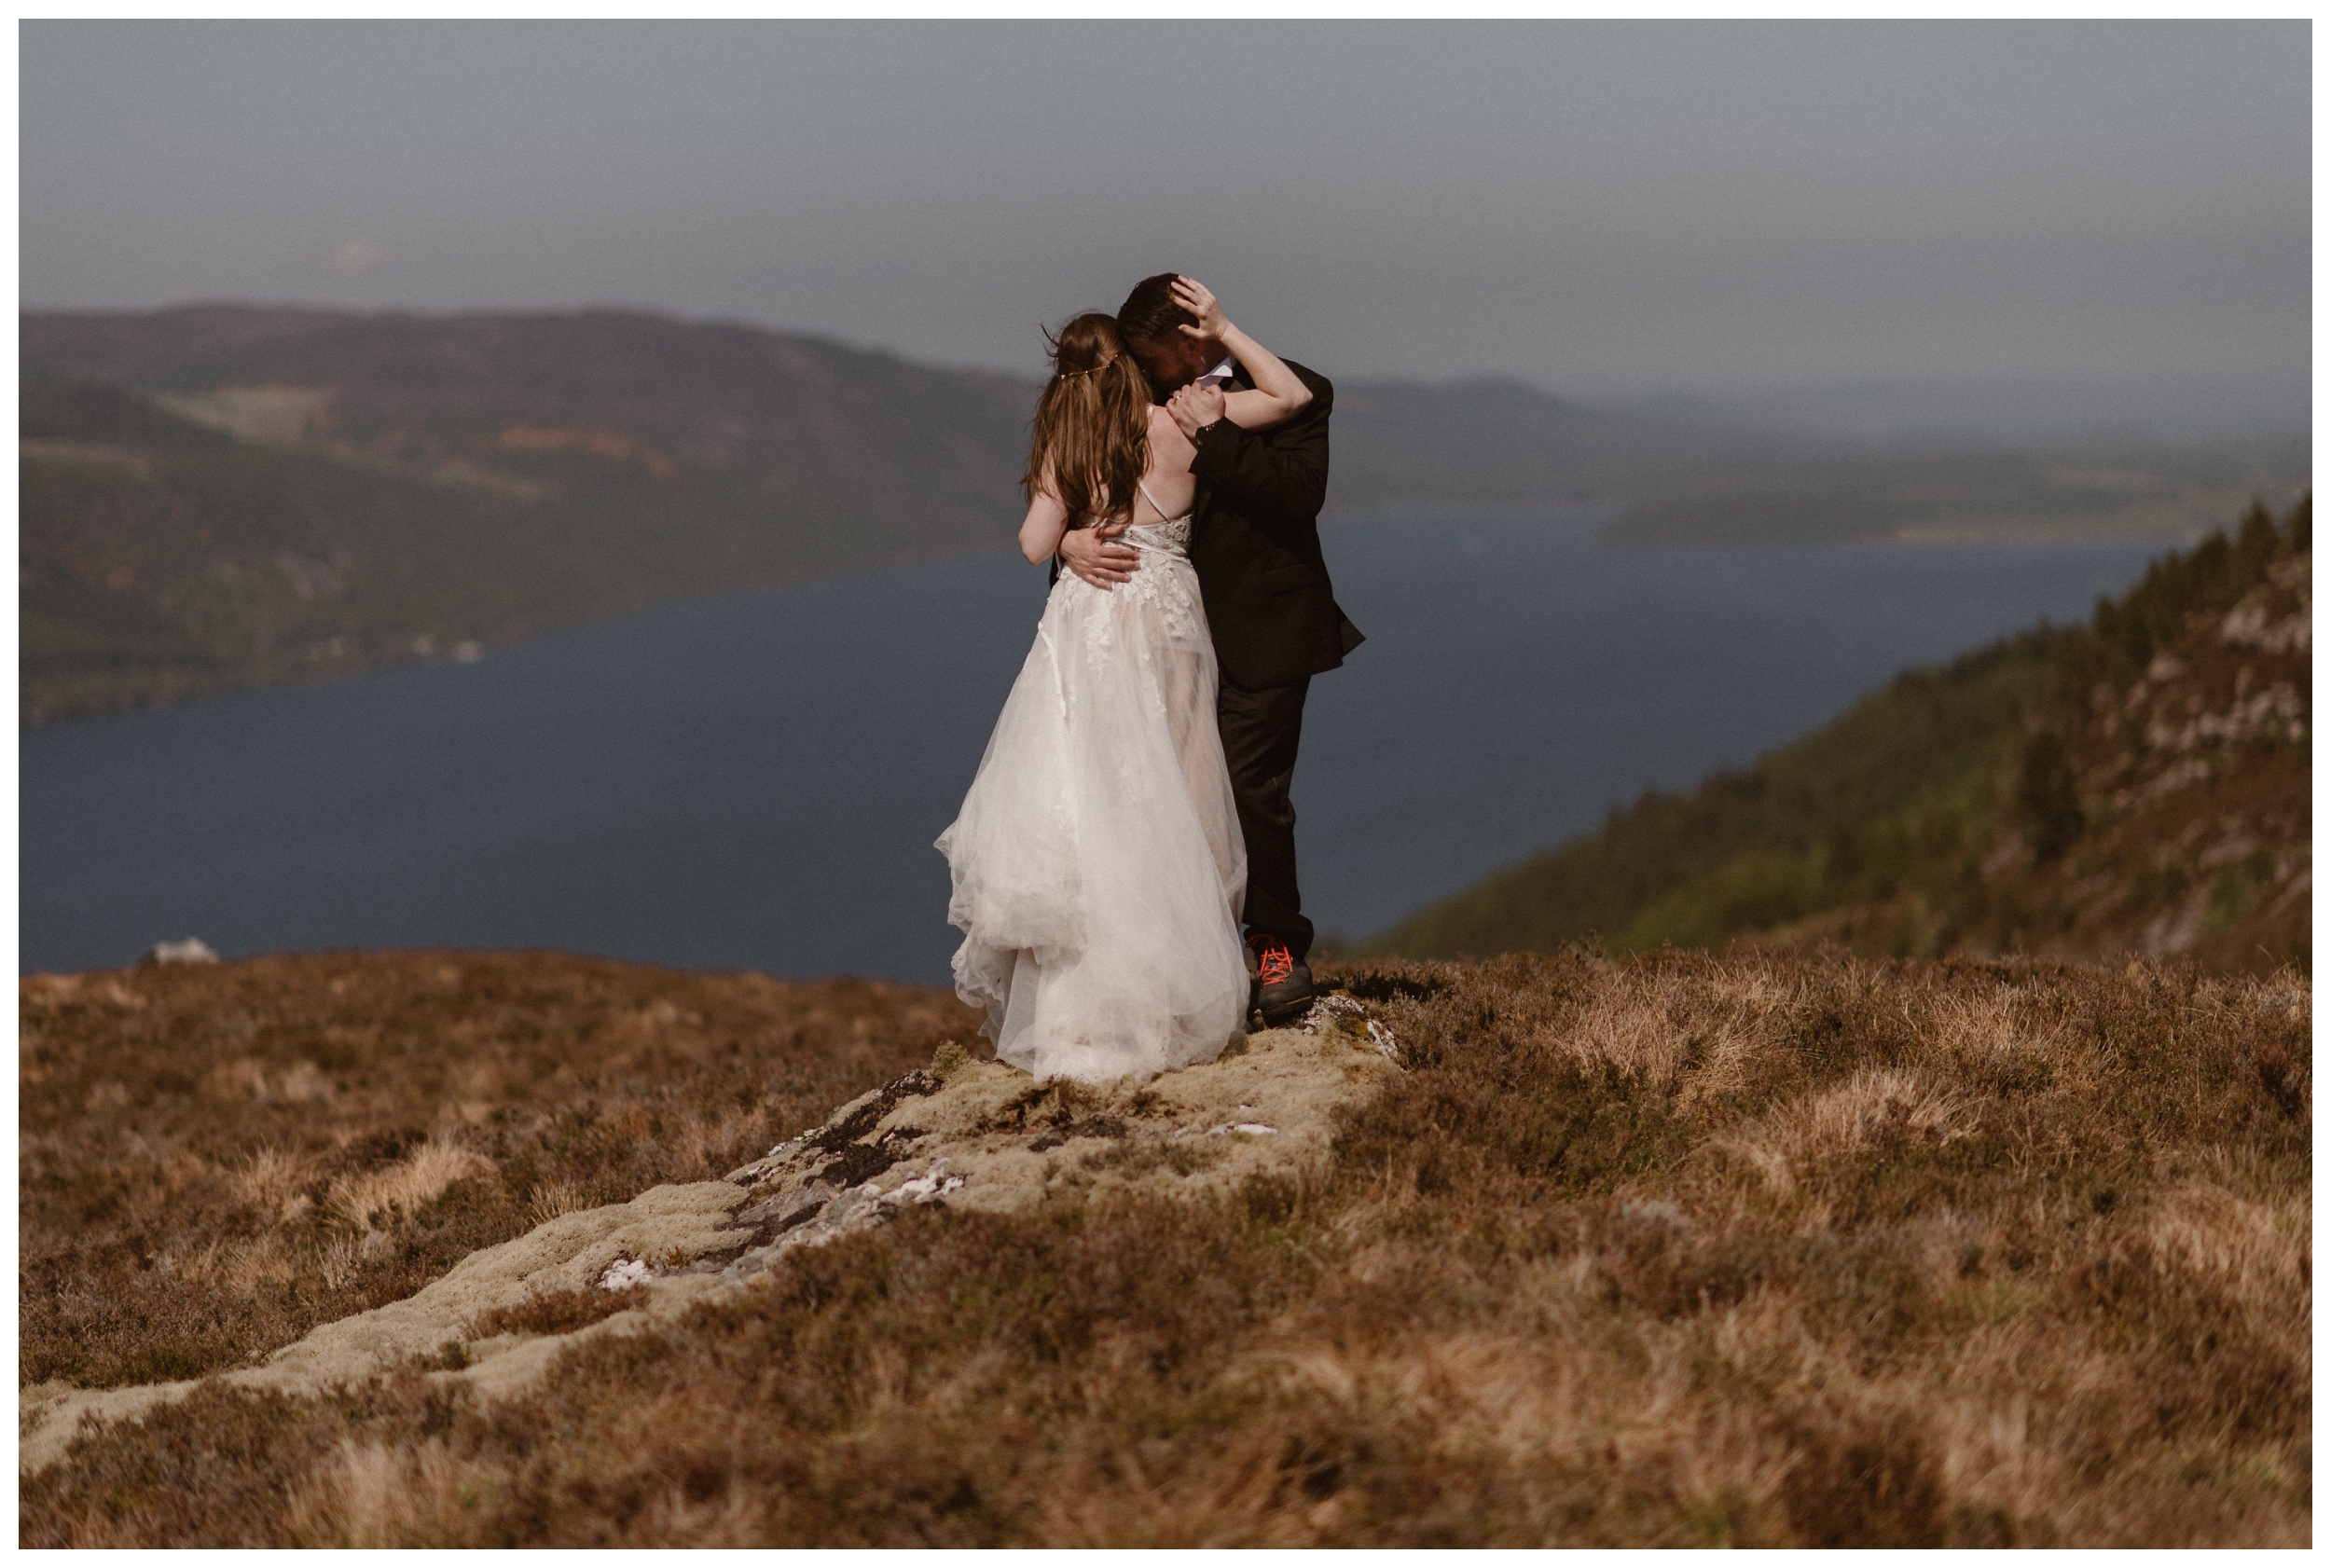 Elissa and Daniel embrace on the north shore of Loch Ness in the Scottish Highlands following their elopement in Glencoe, Scotland the day before. Photo by Maddie Mae, Adventure Instead.